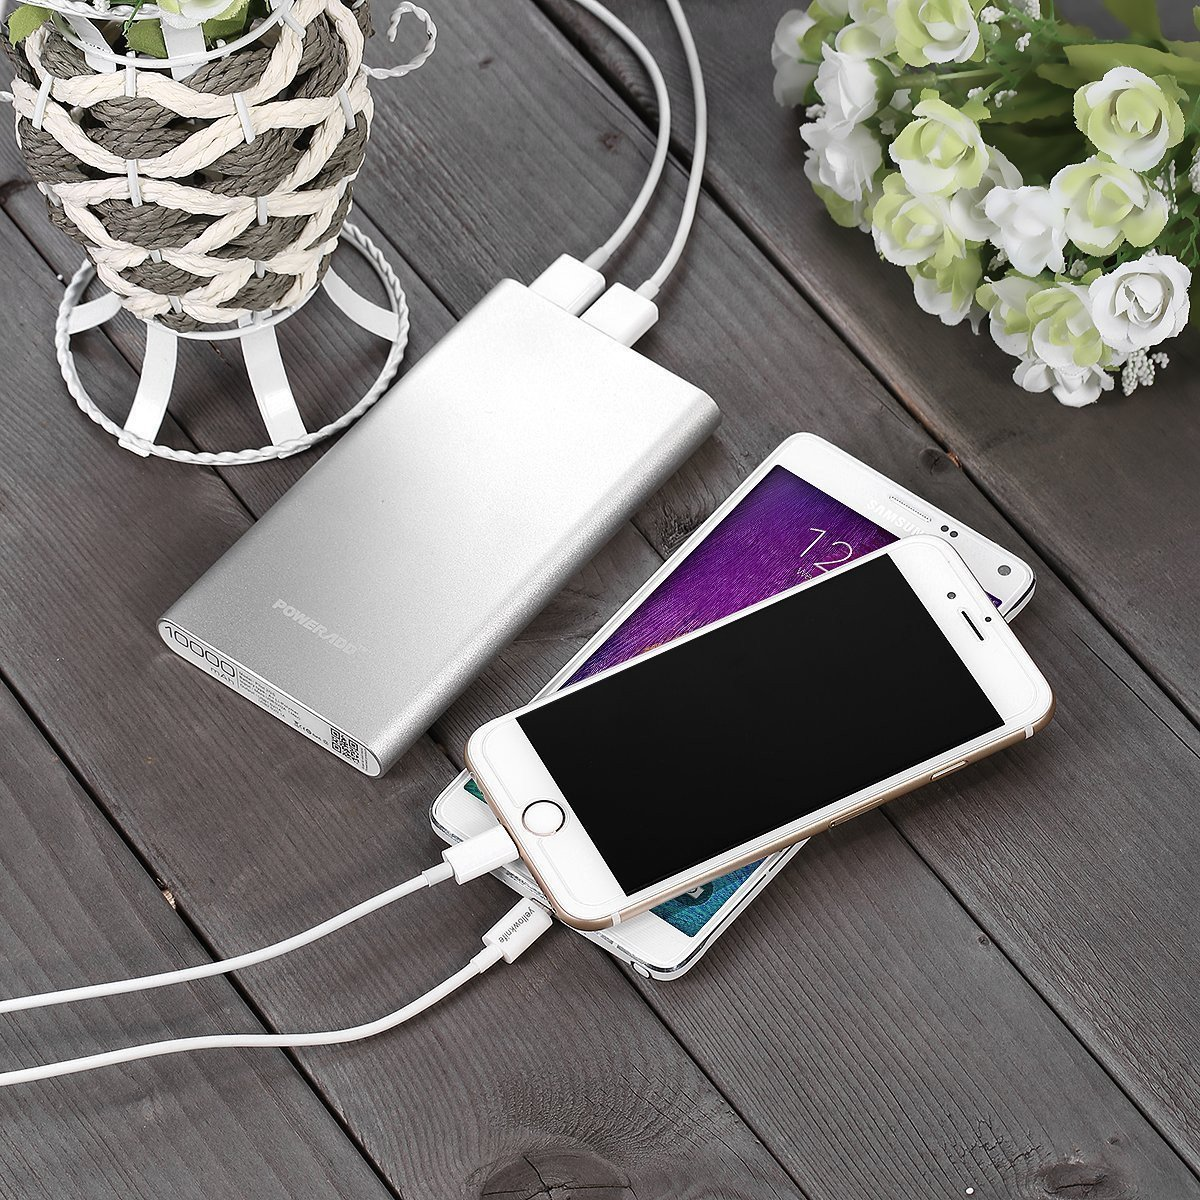 Poweradd Pilot 2GS Portable powerbank